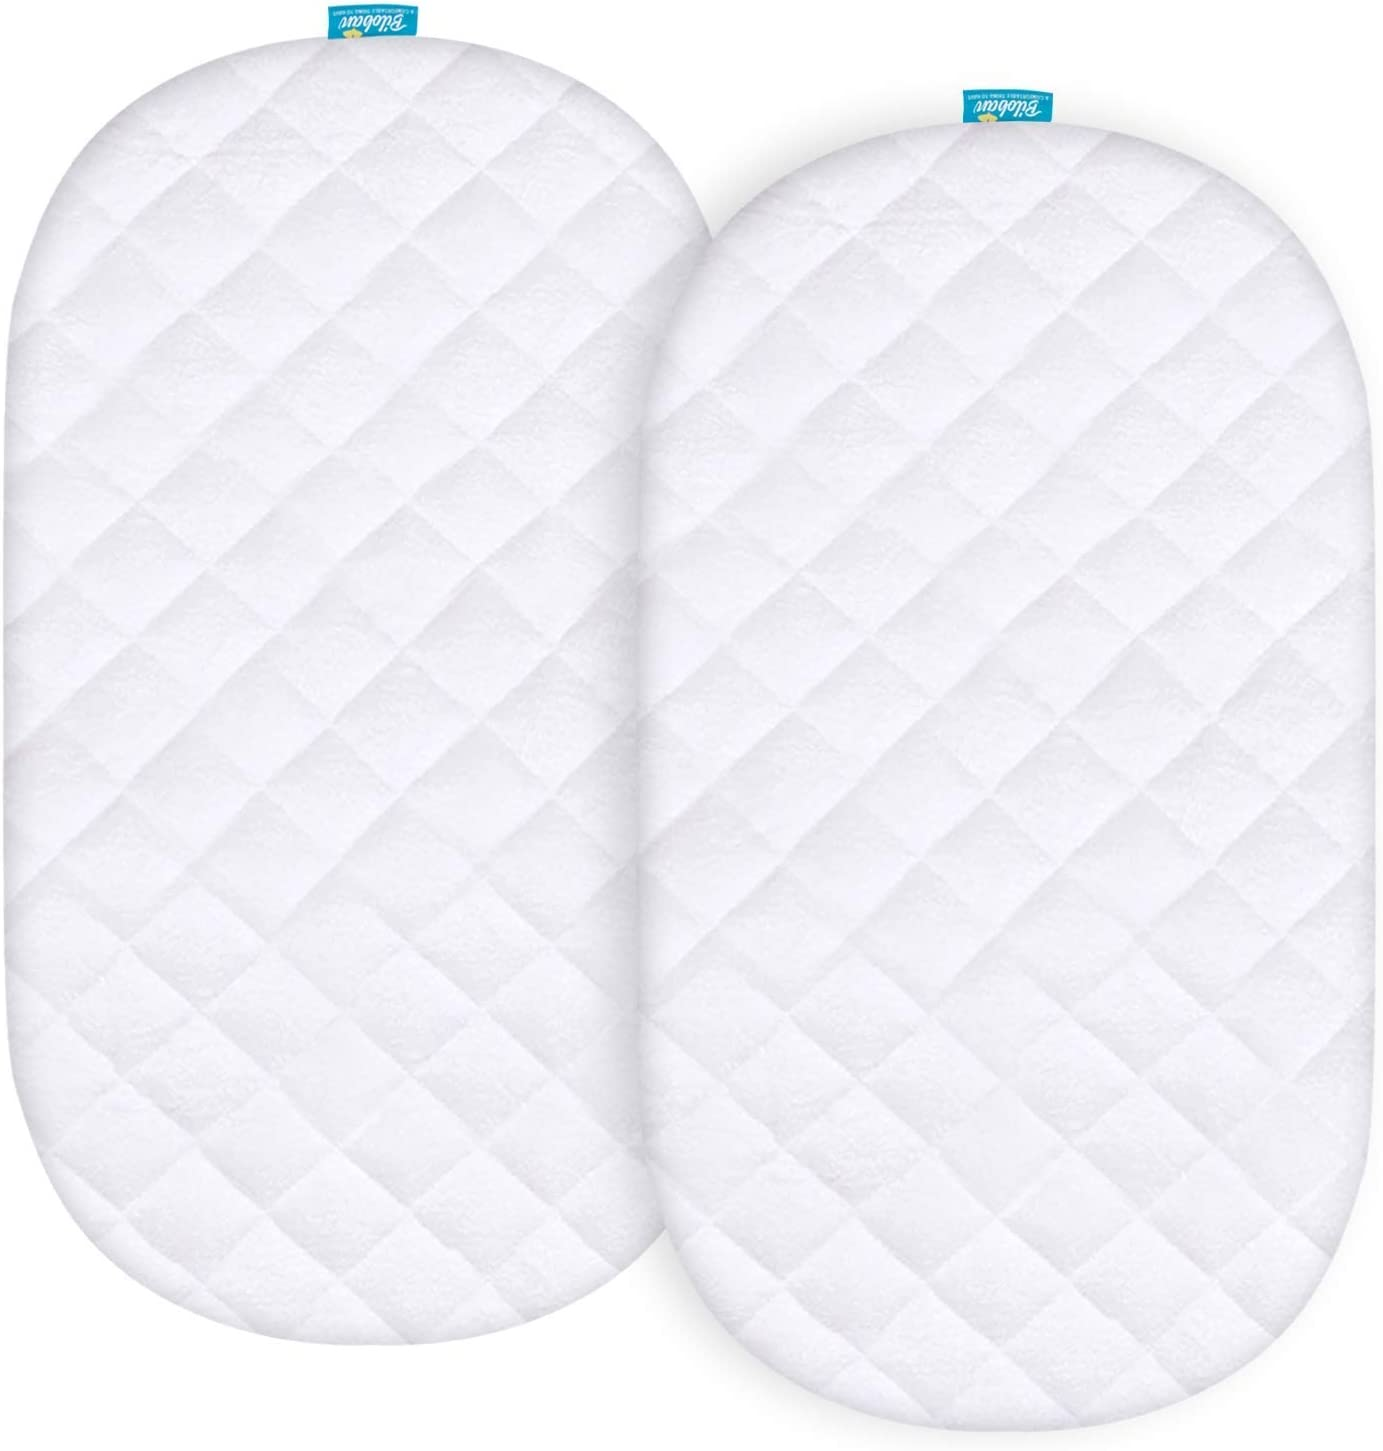 Bassinet Bedding Baby Quilted Mattress Cover and 100% Jersey Knit ...